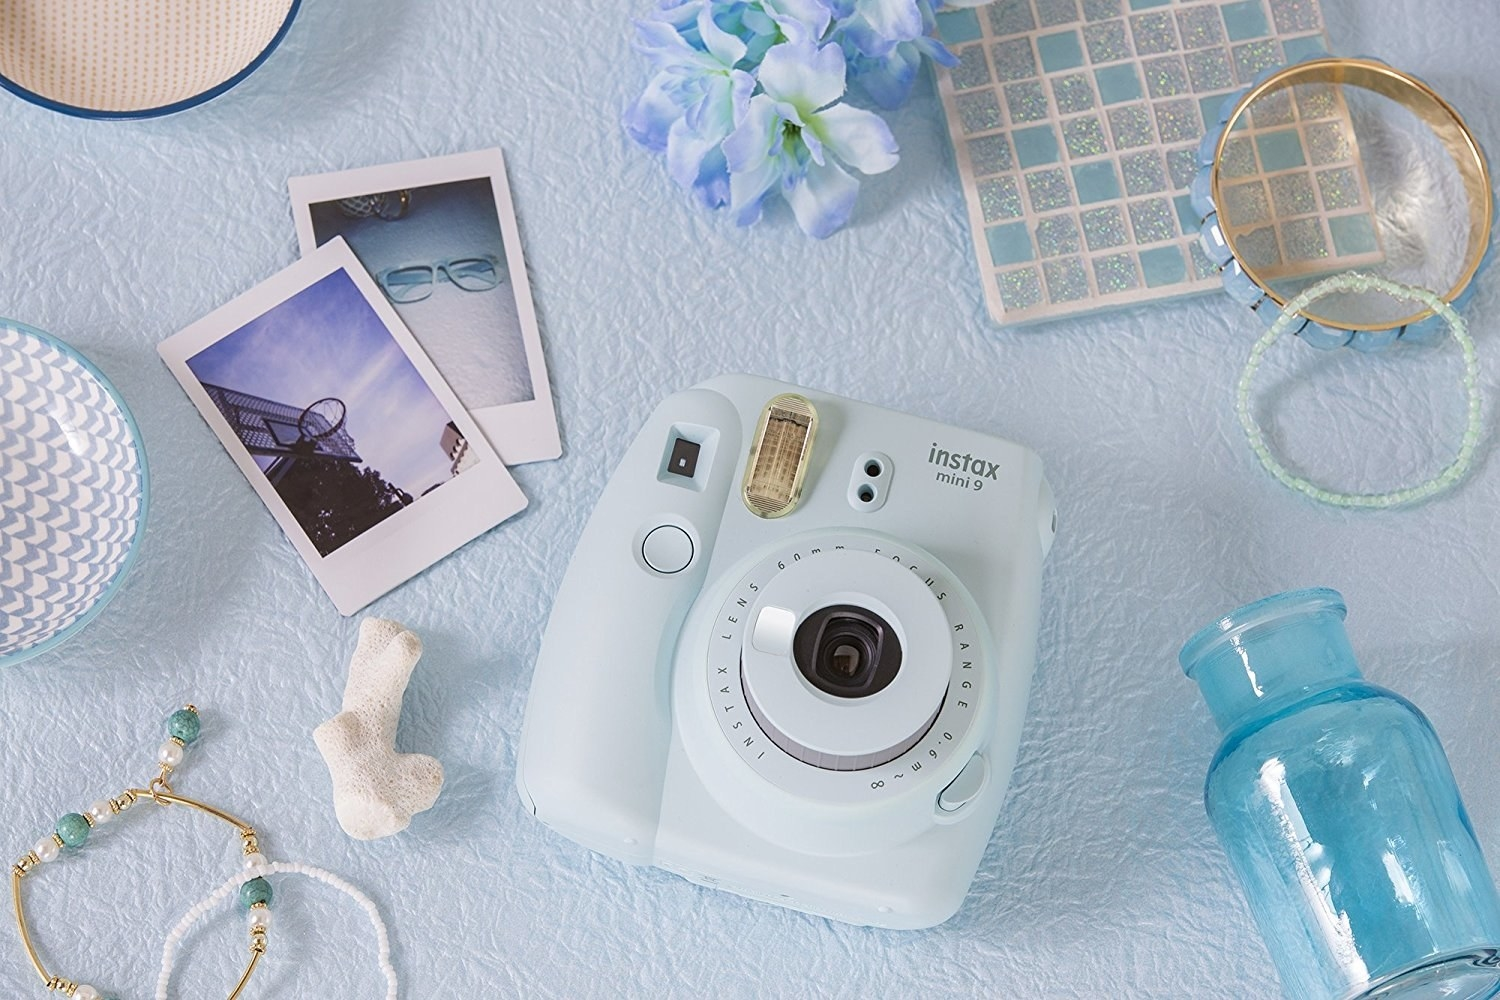 The camera in light blue, with rectangular instant photos